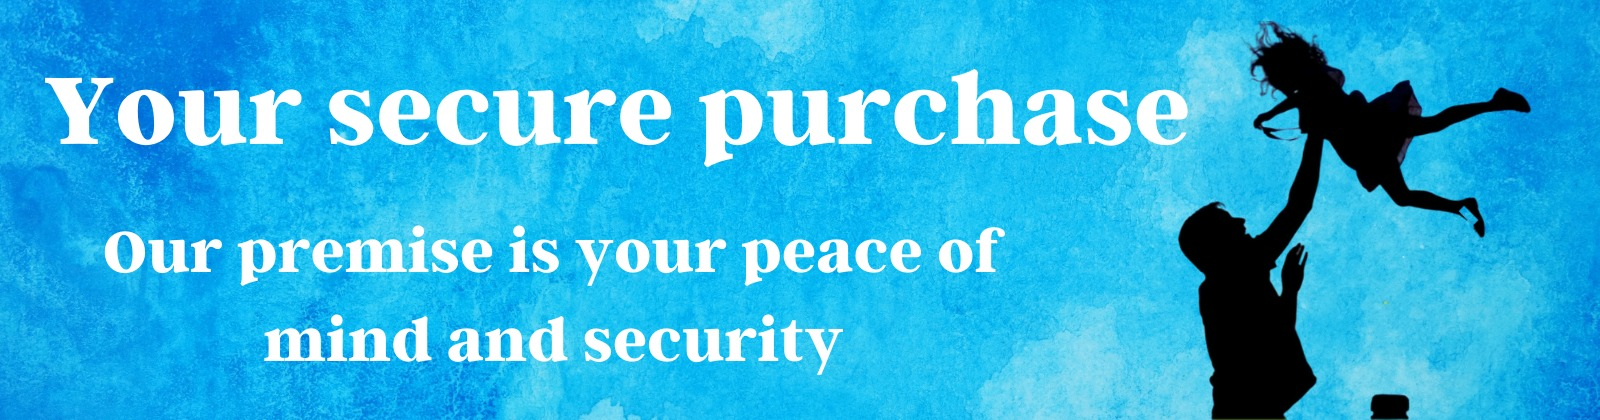 Secure Purchase